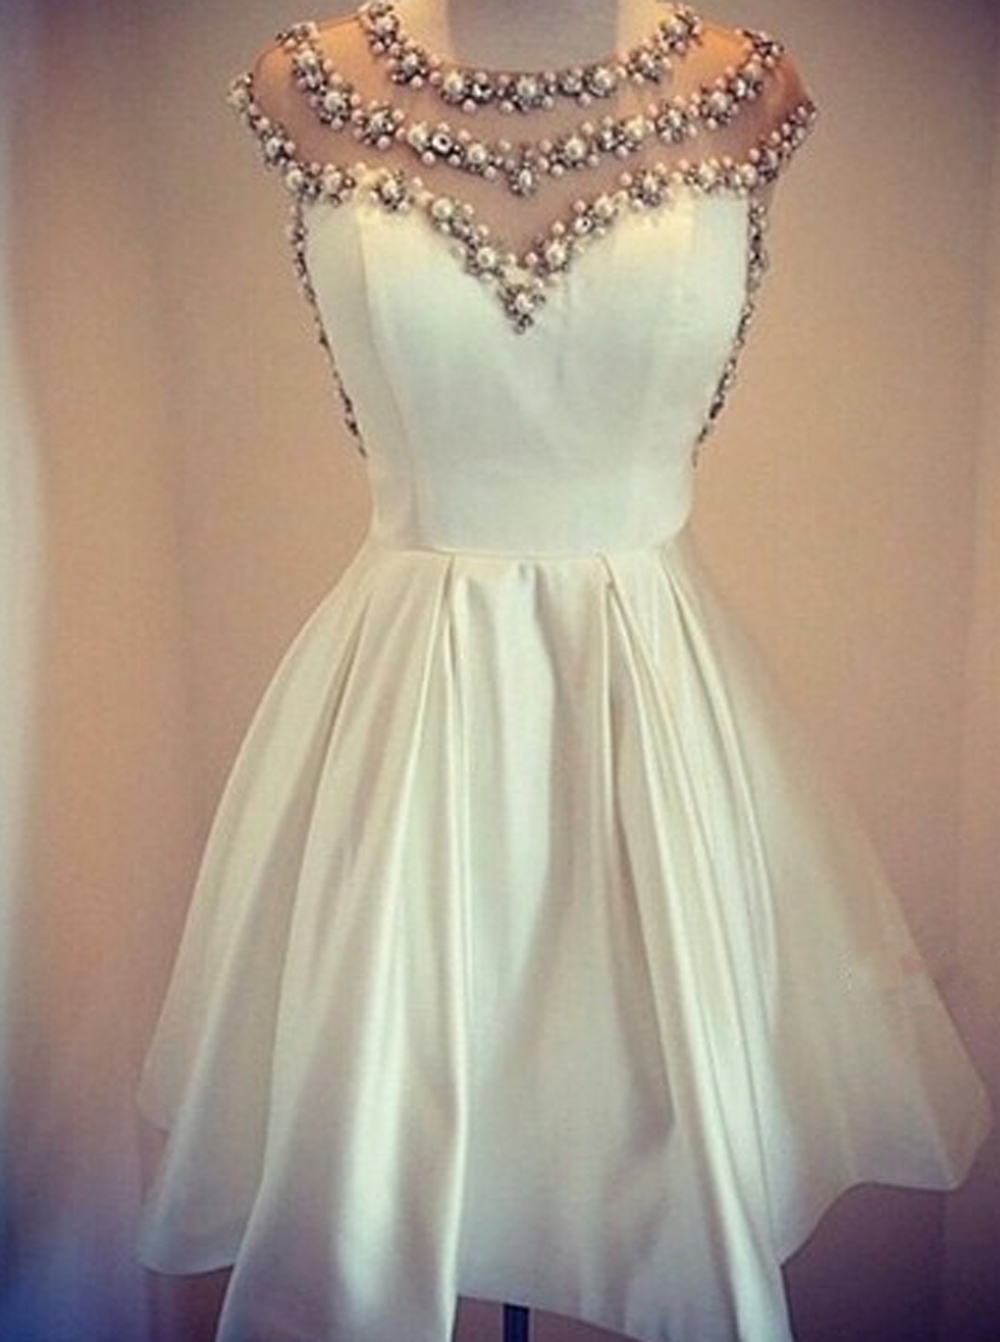 Stylish Jewel Cap Sleeves Short White Homecoming Dress with Pearls фото